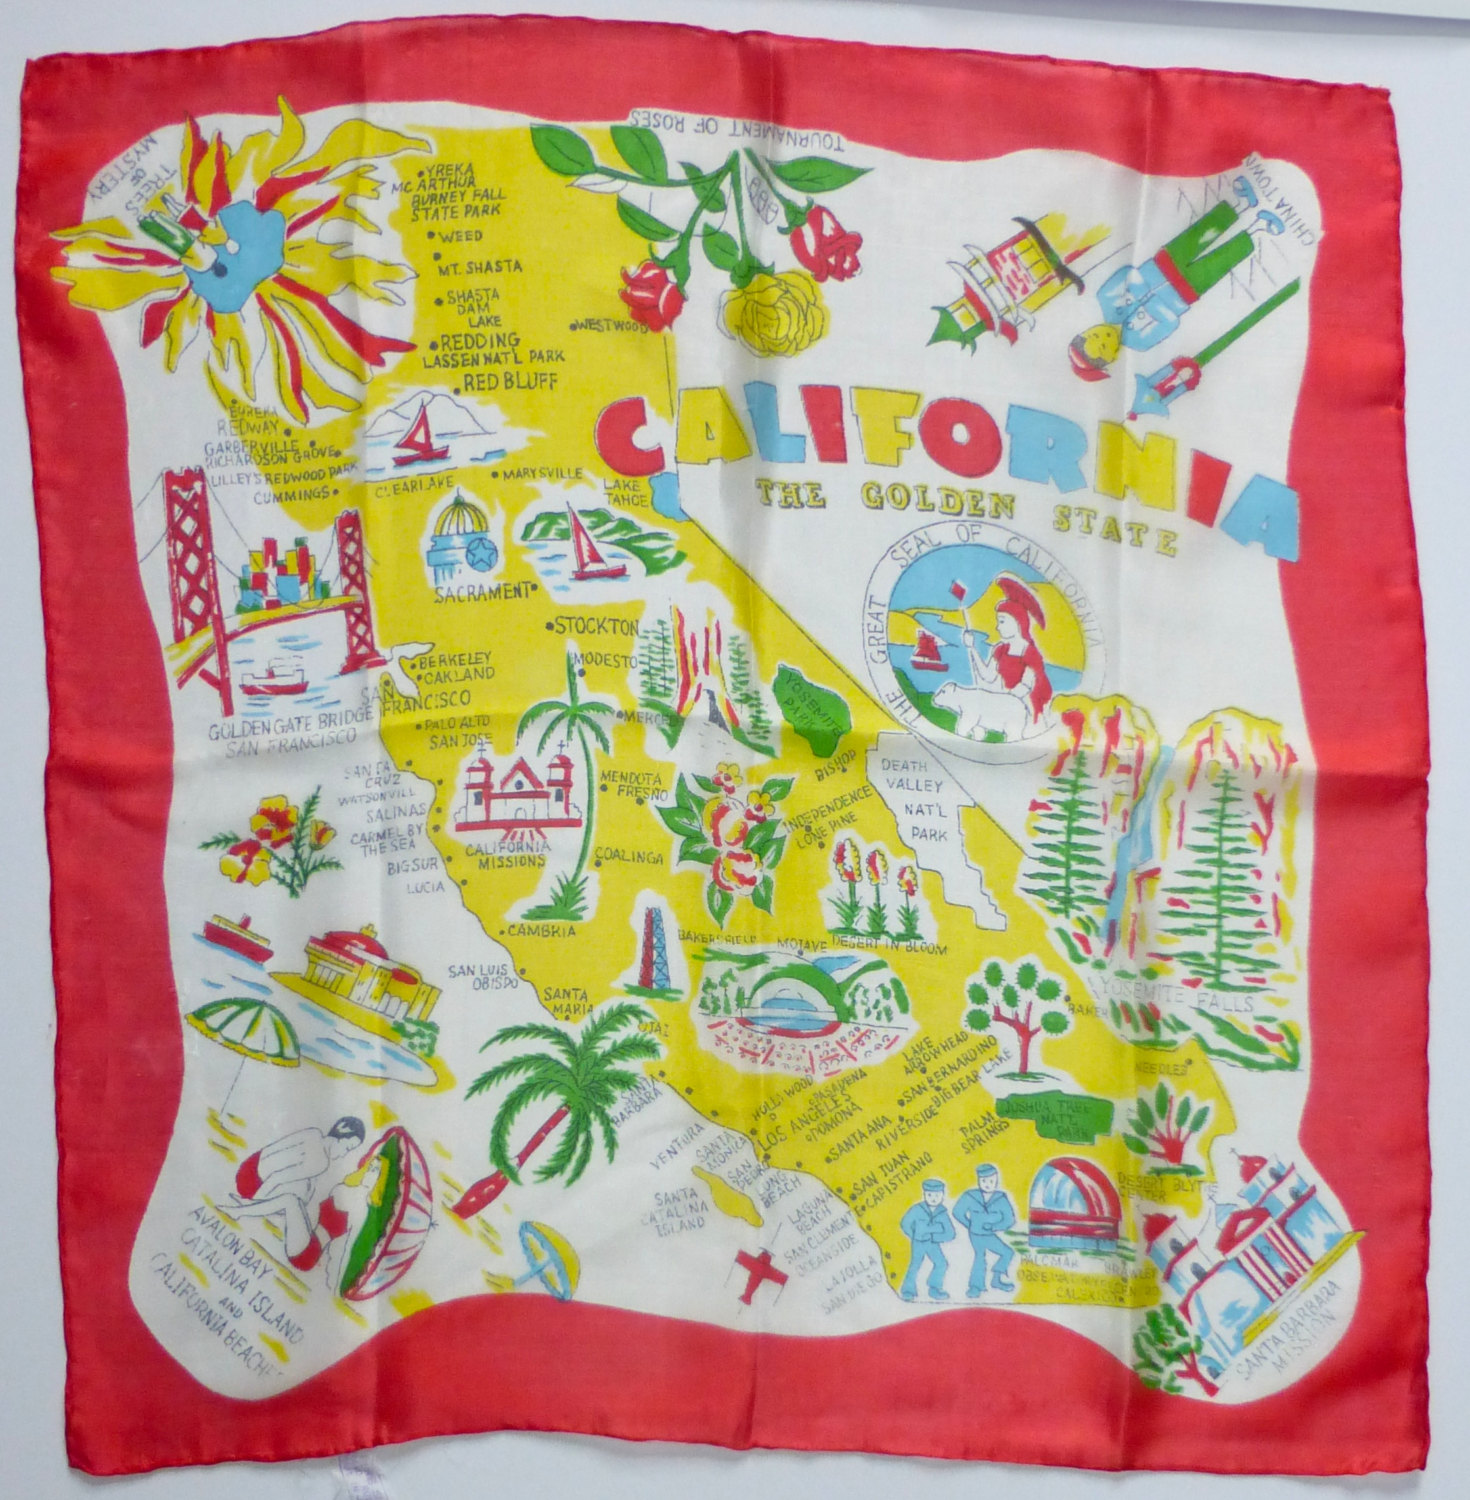 fantastic vintage scarf the story of the Golden state